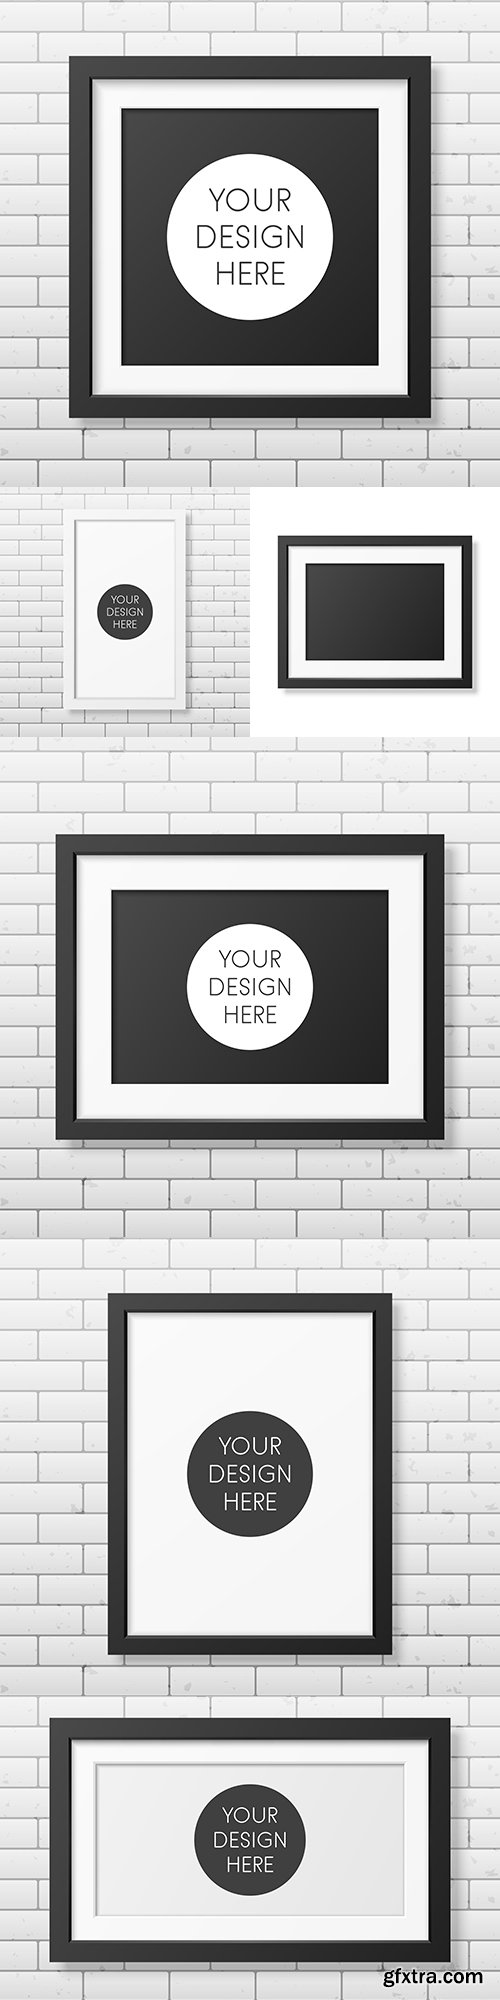 Realistic square black frame on brick wall template